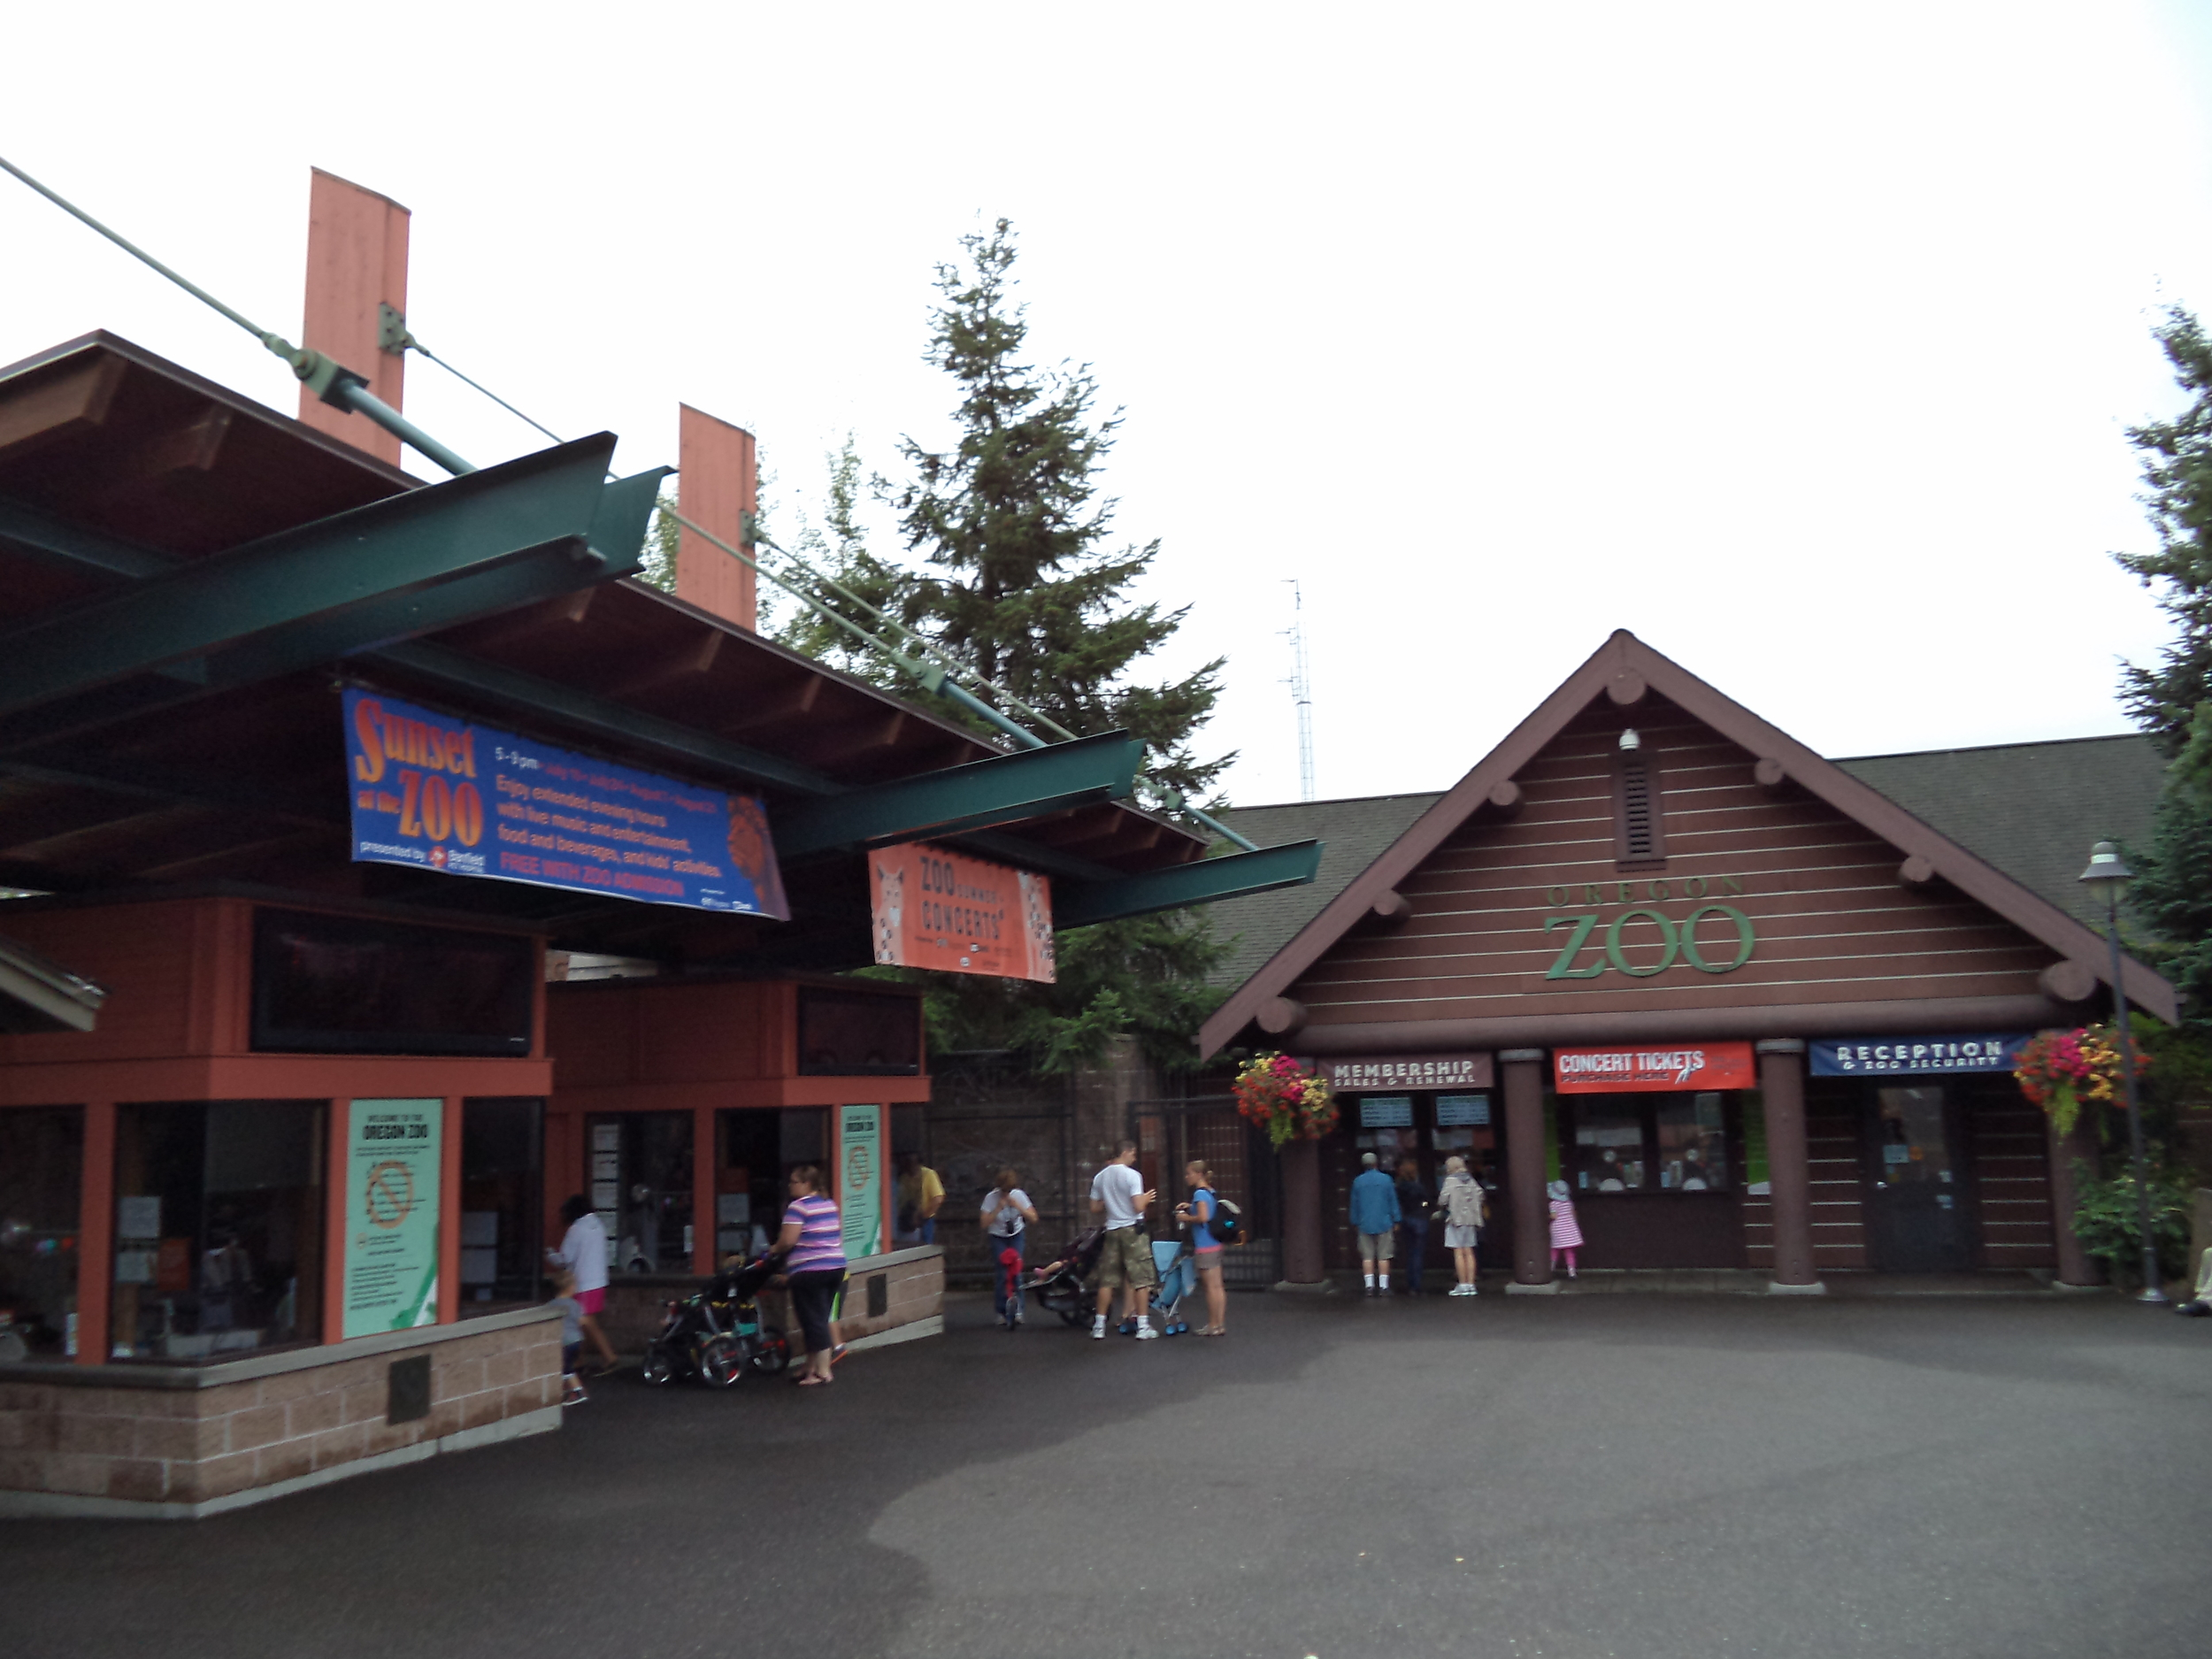 The Oregon Zoo